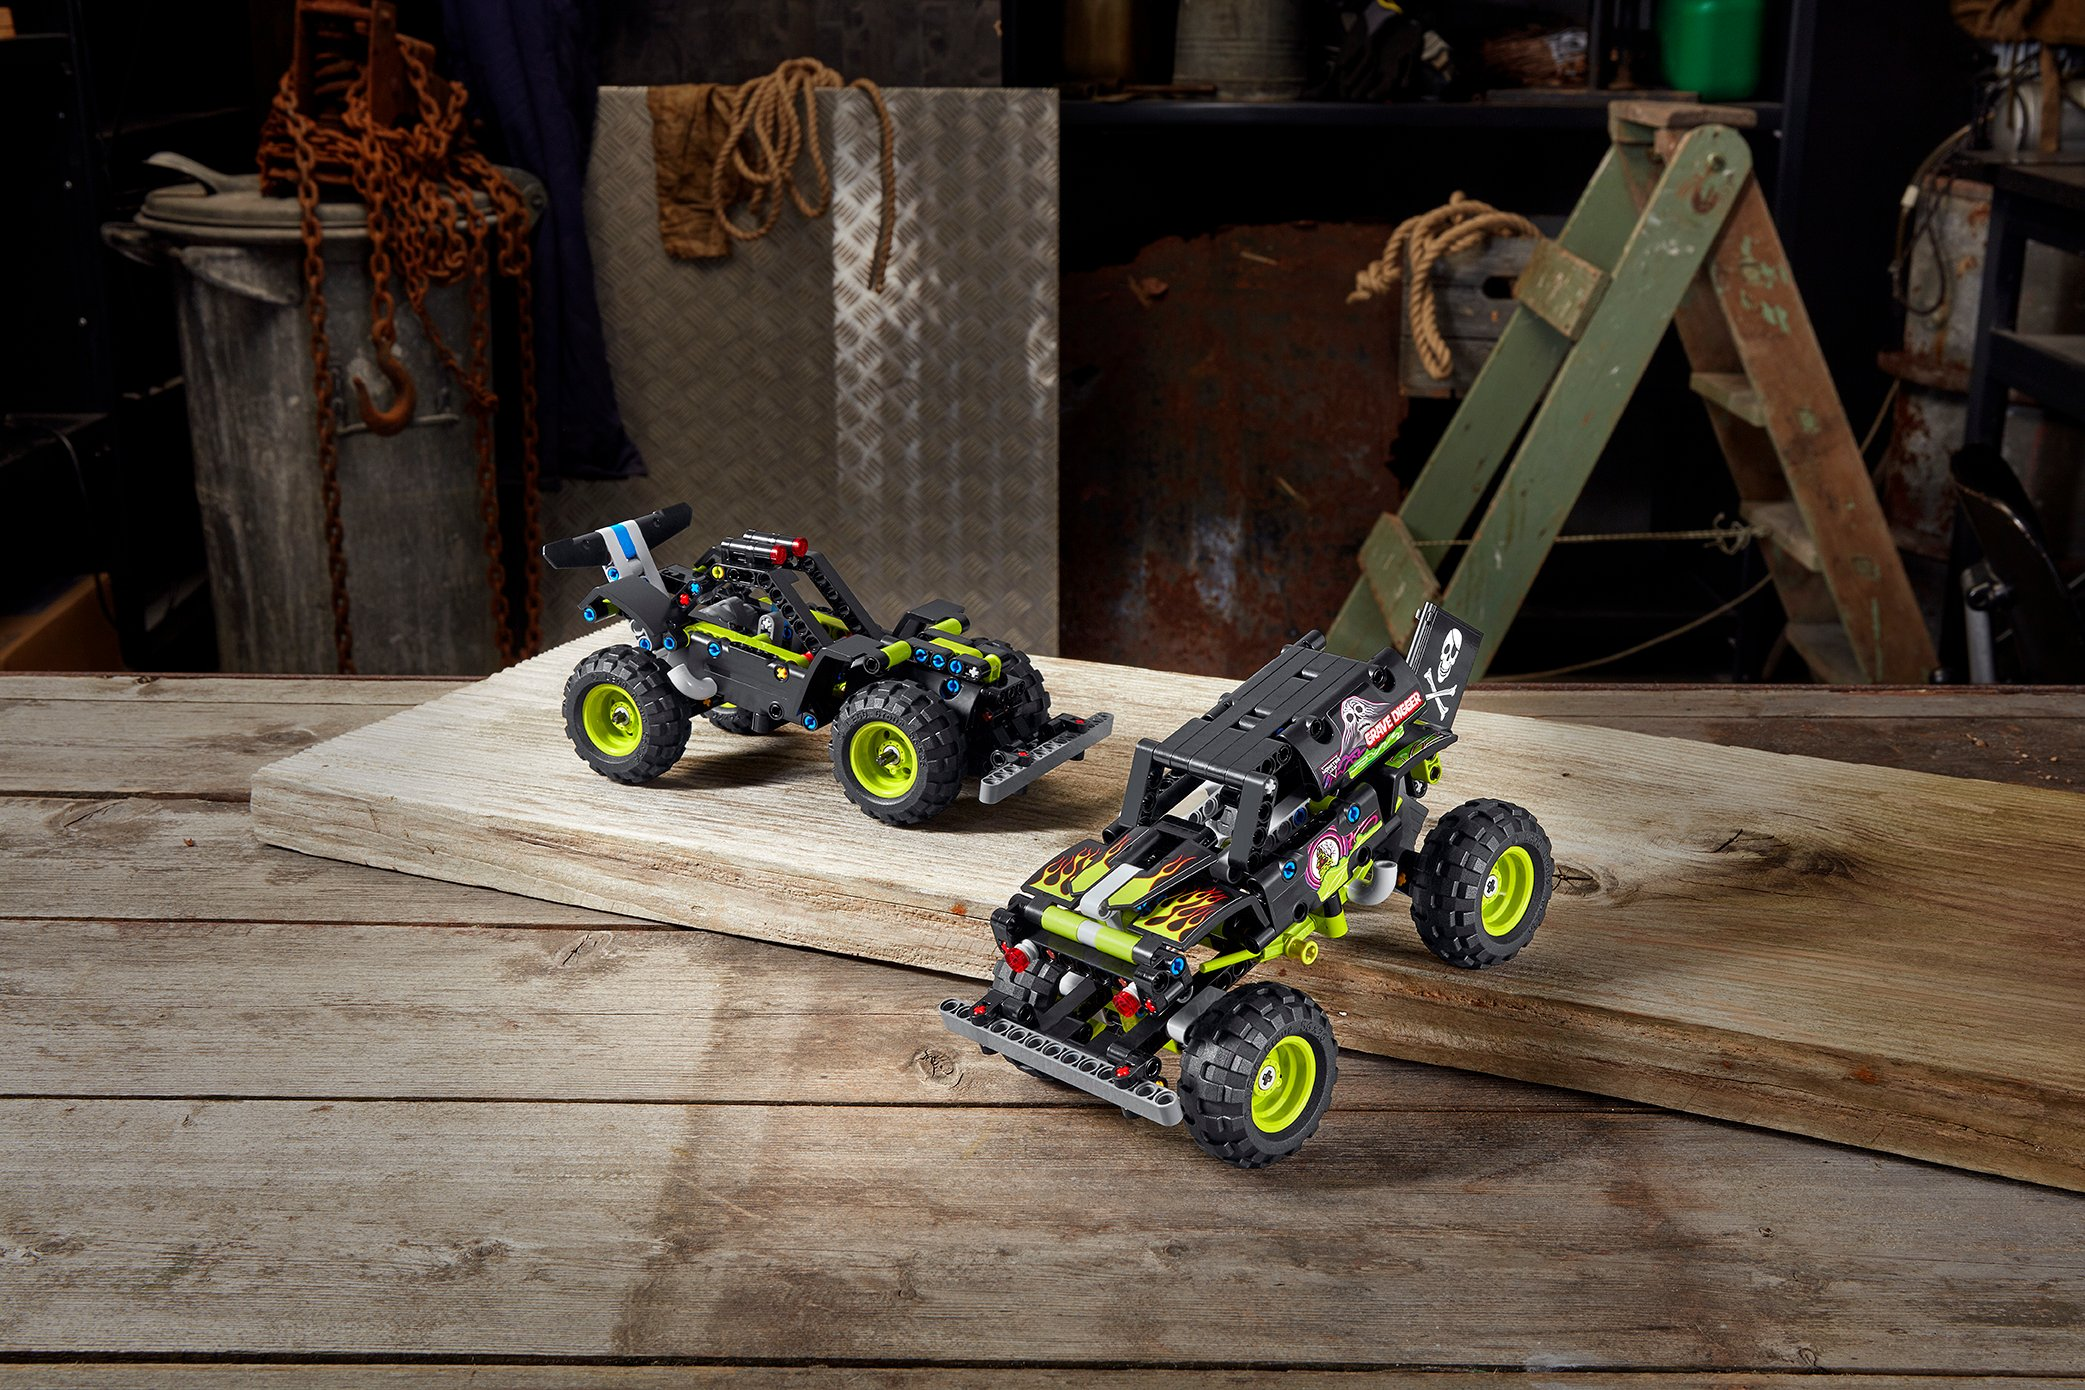 LEGO Technic Monster Jam series gets two new monster truck replicas 15